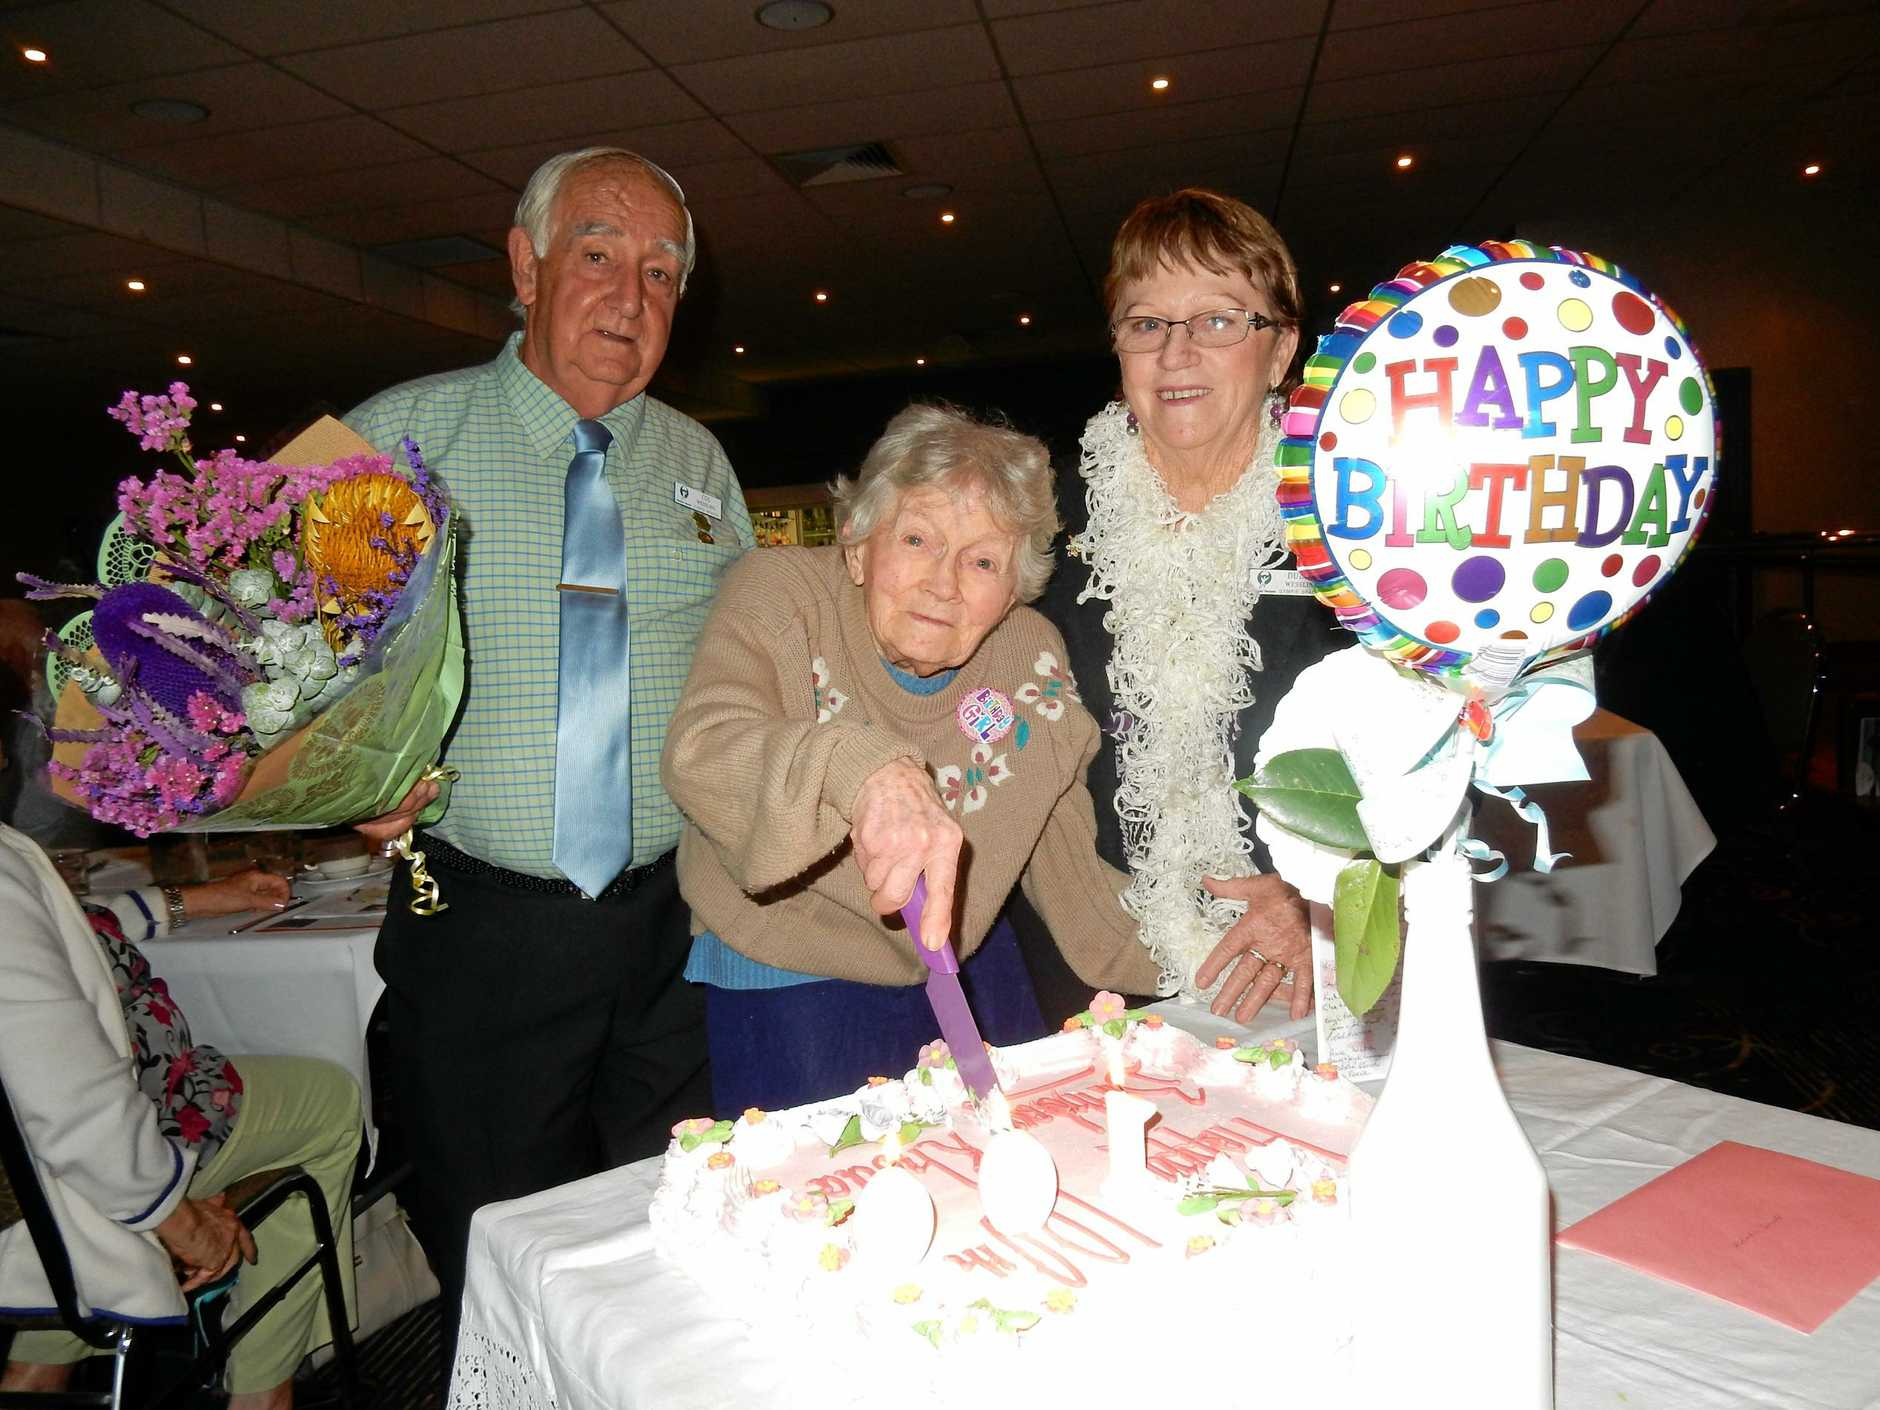 GYMPIE NATIONAL SENIORS. CENTENARIAN: Rhoda Small cuts her birthday cake with Gympie National Seniors president Col Wessling and his wife Dulcie.  Photo Contributed